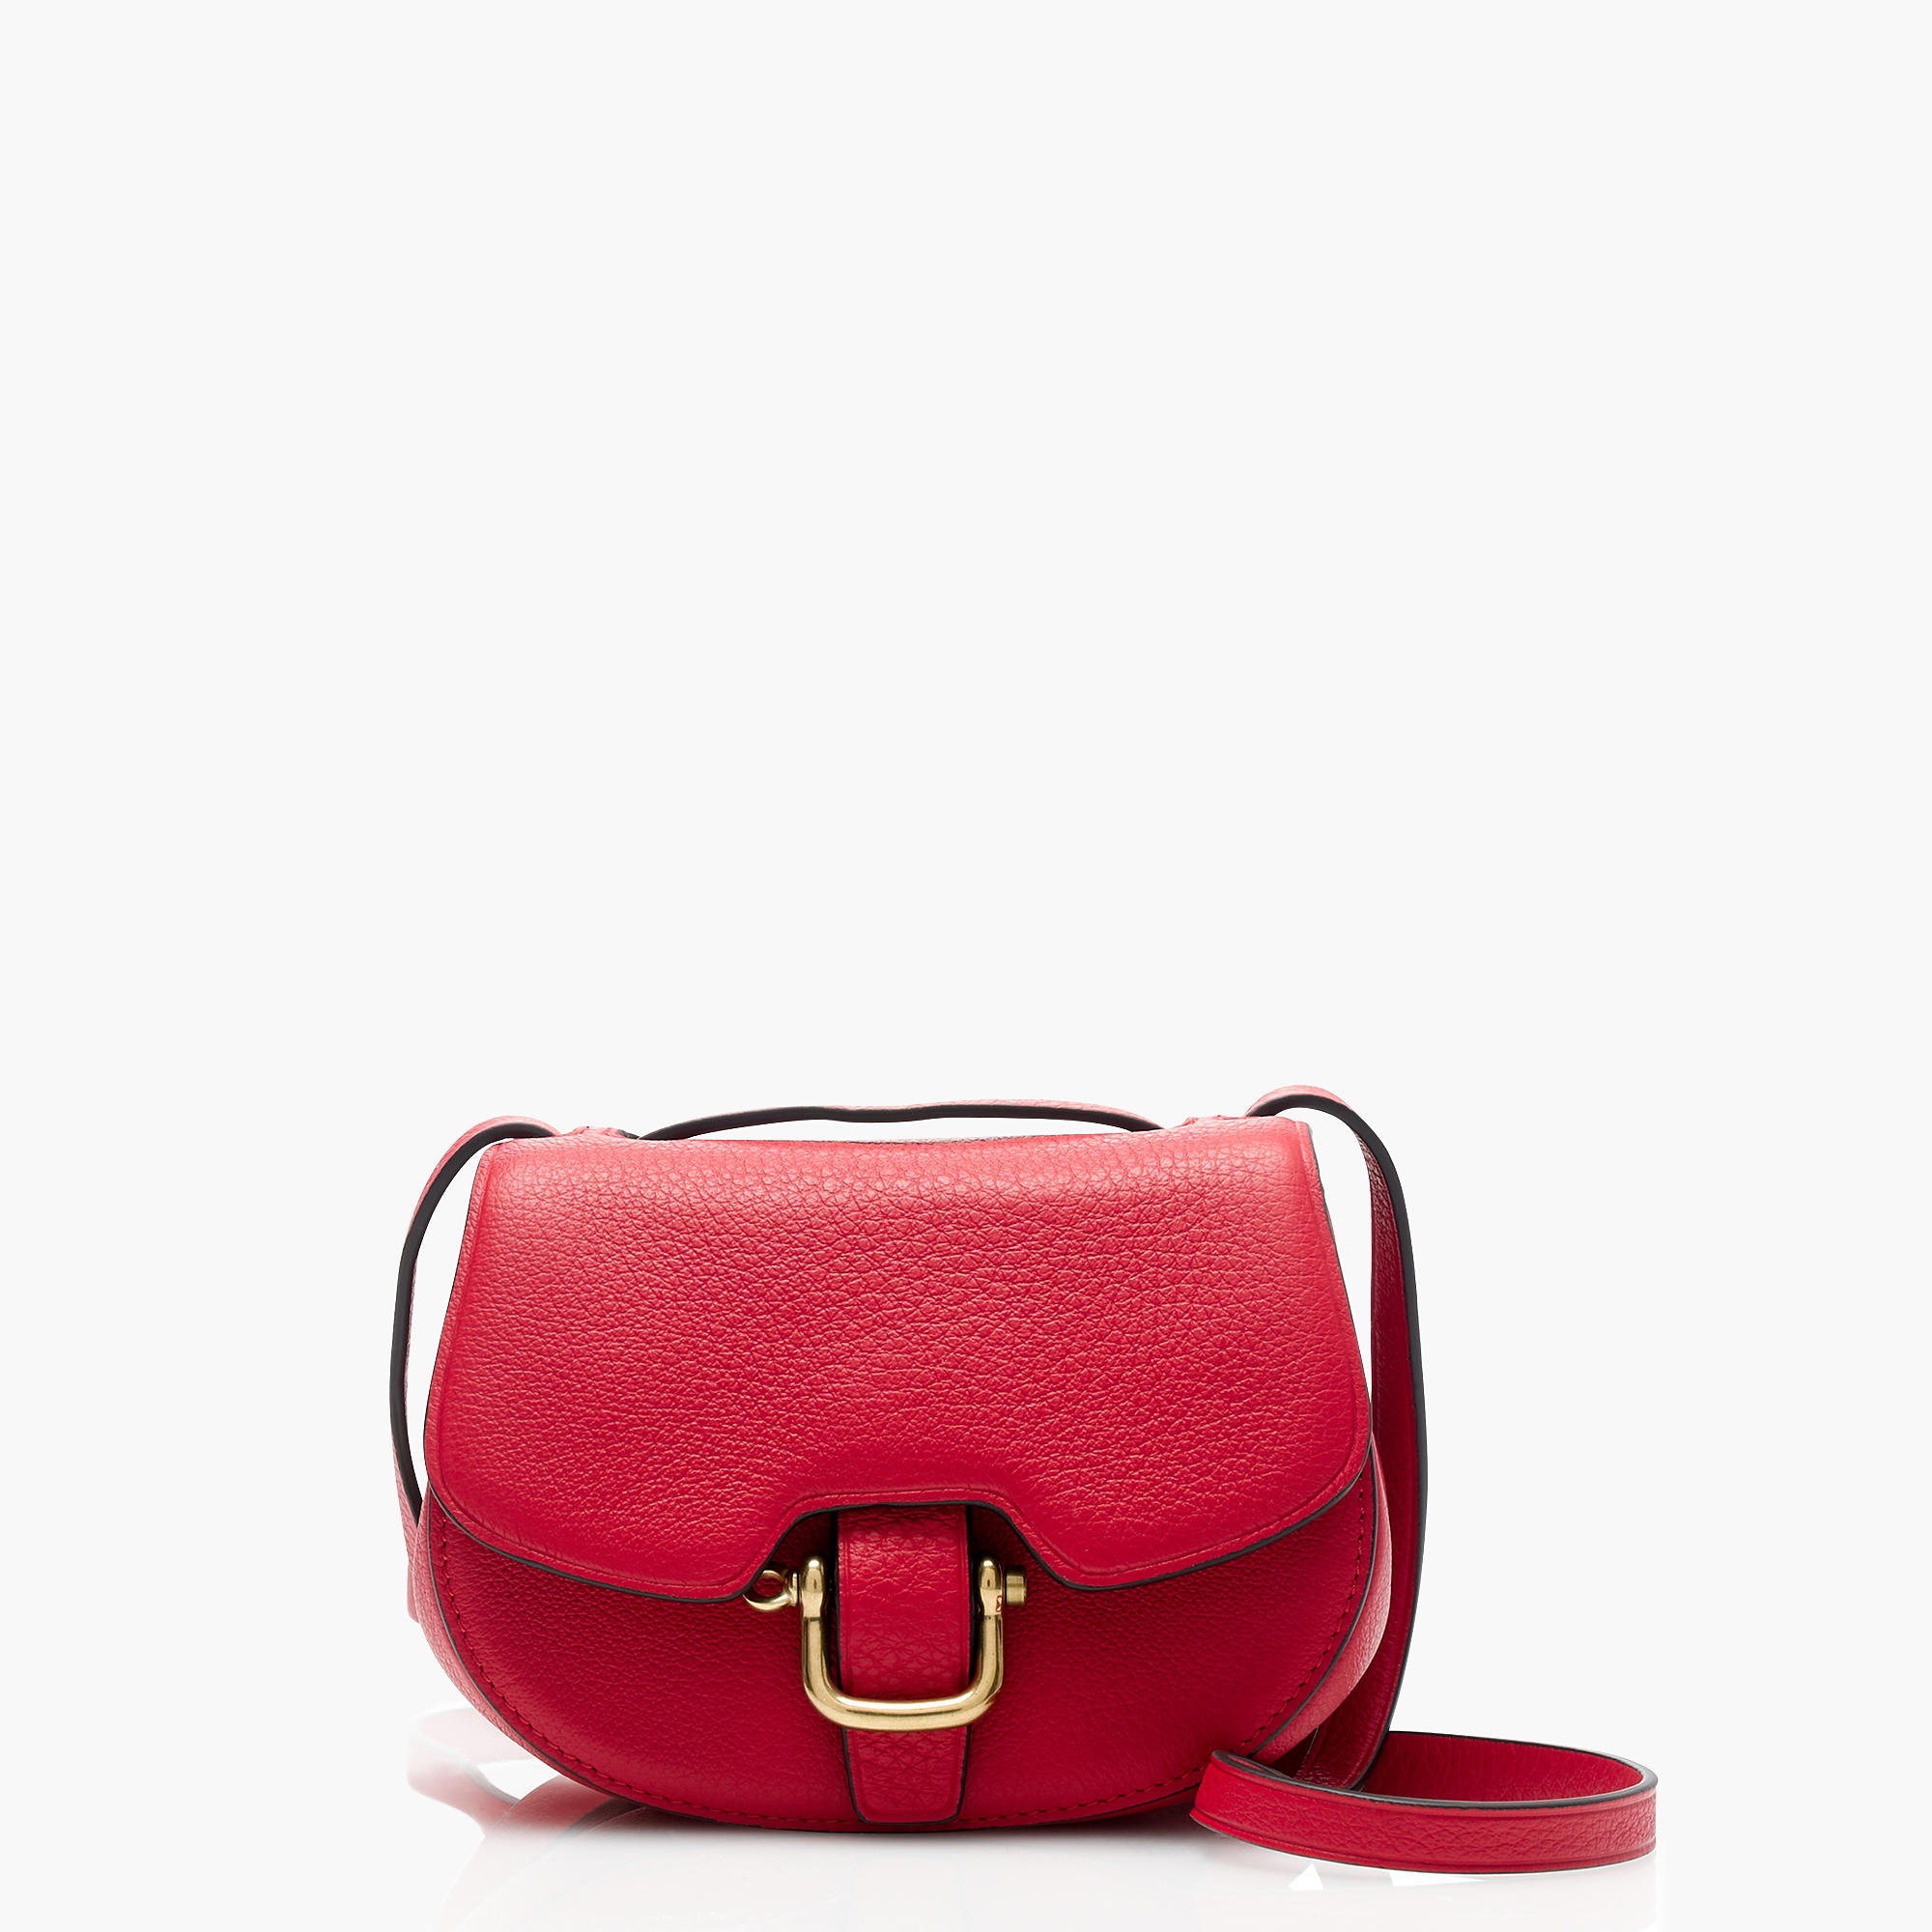 J.Crew Mini Rider Bag in Italian Leather, Festival Red